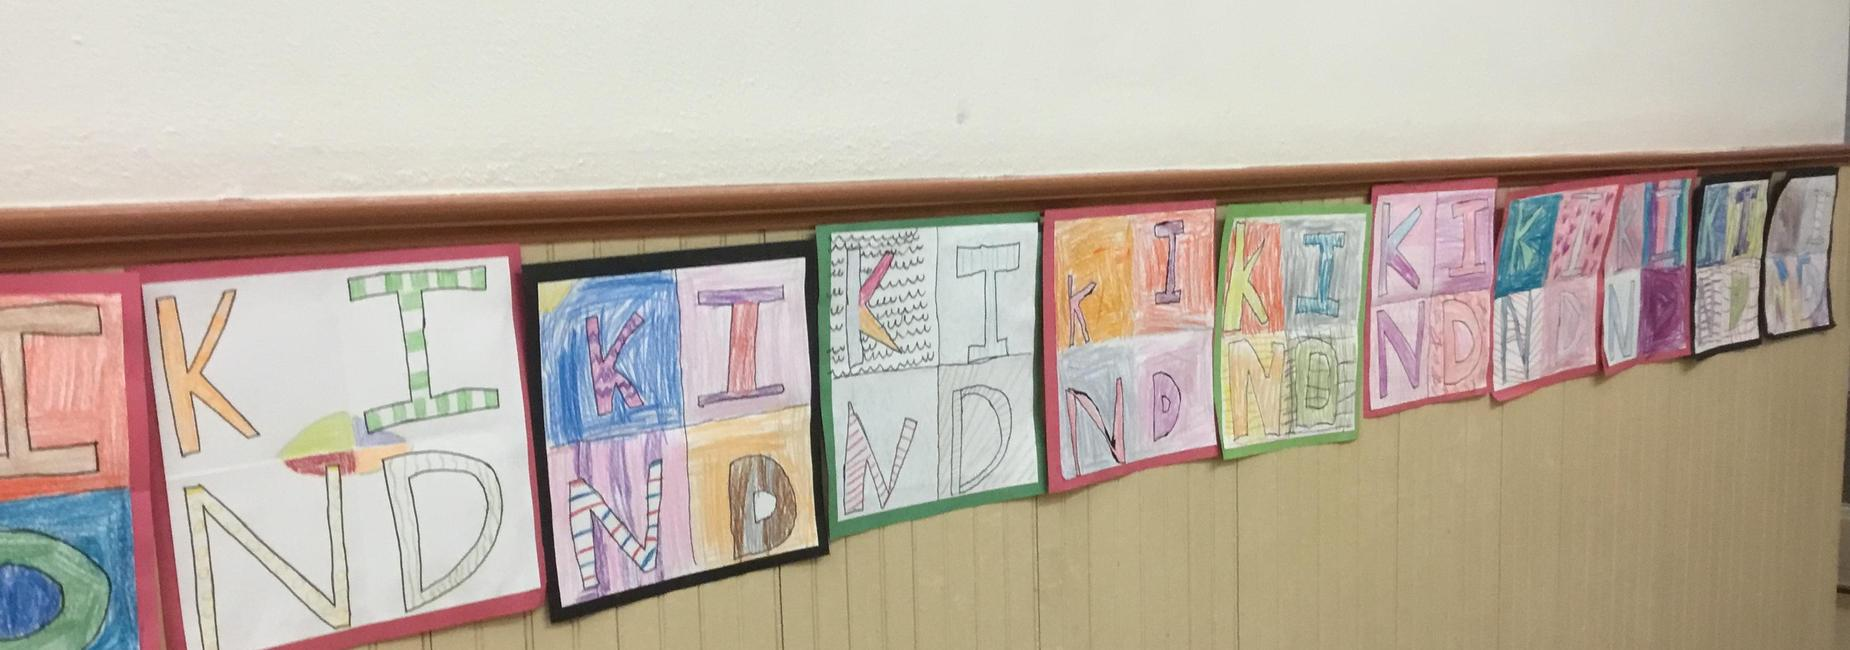 Kid art with KIND in colorful letters